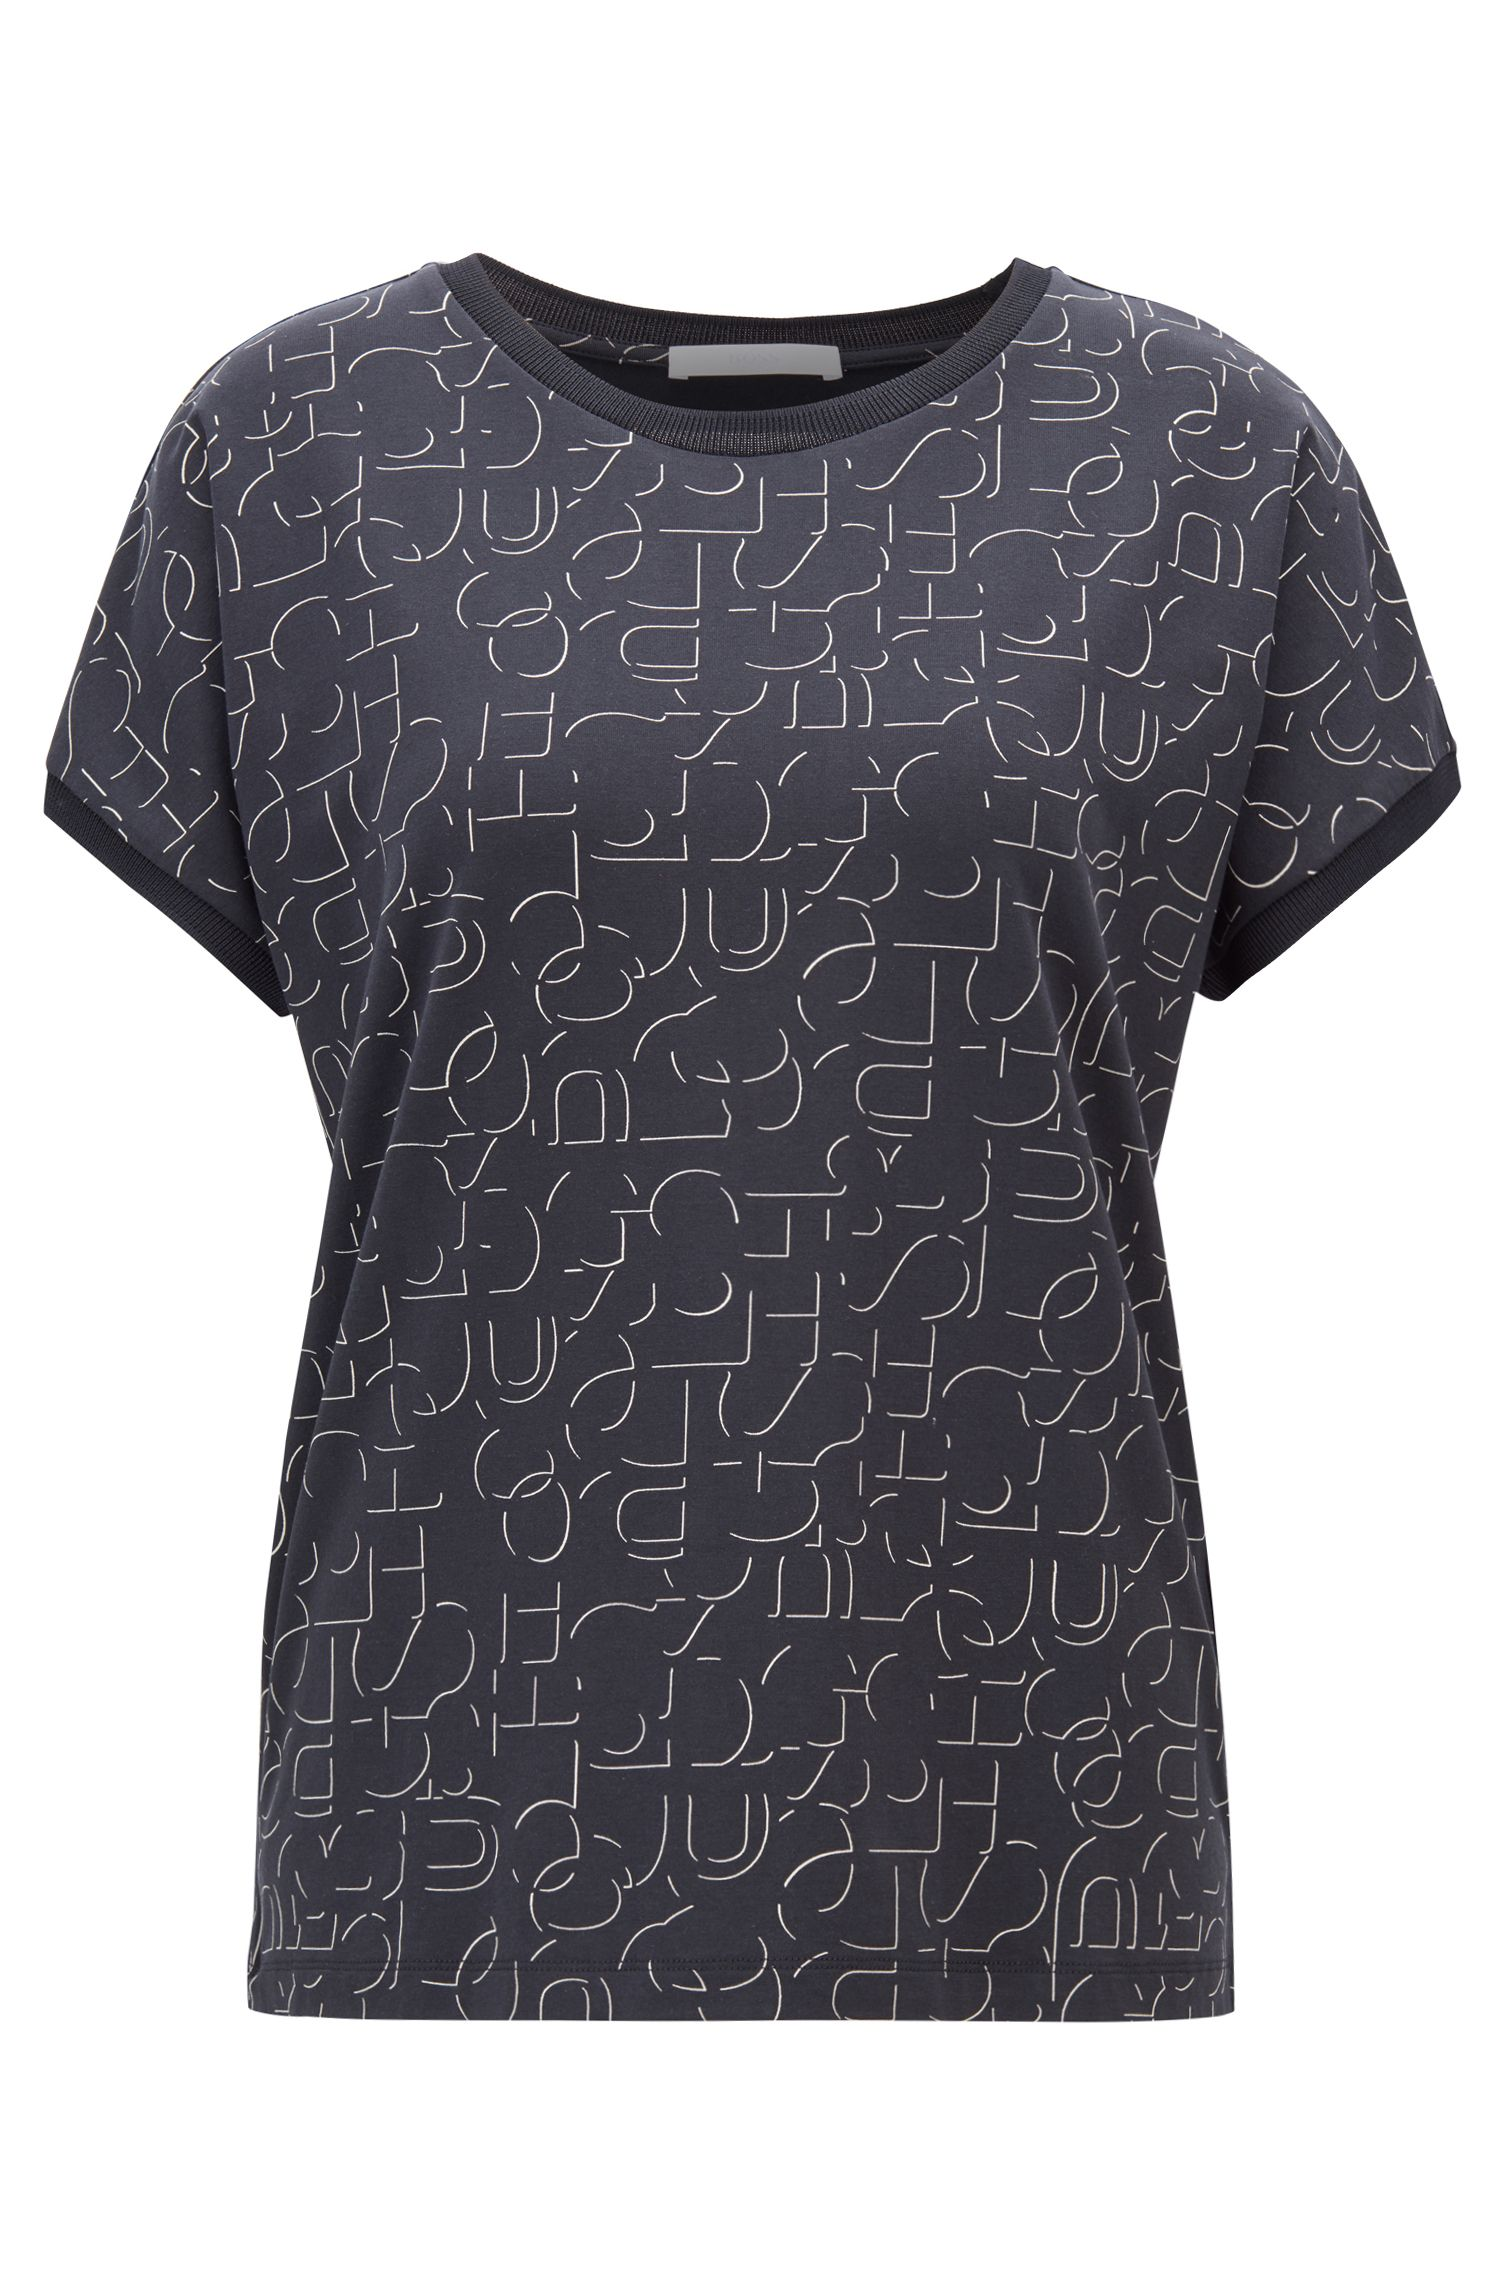 Short-sleeved top in stretch jersey with abstract logo, Patterned